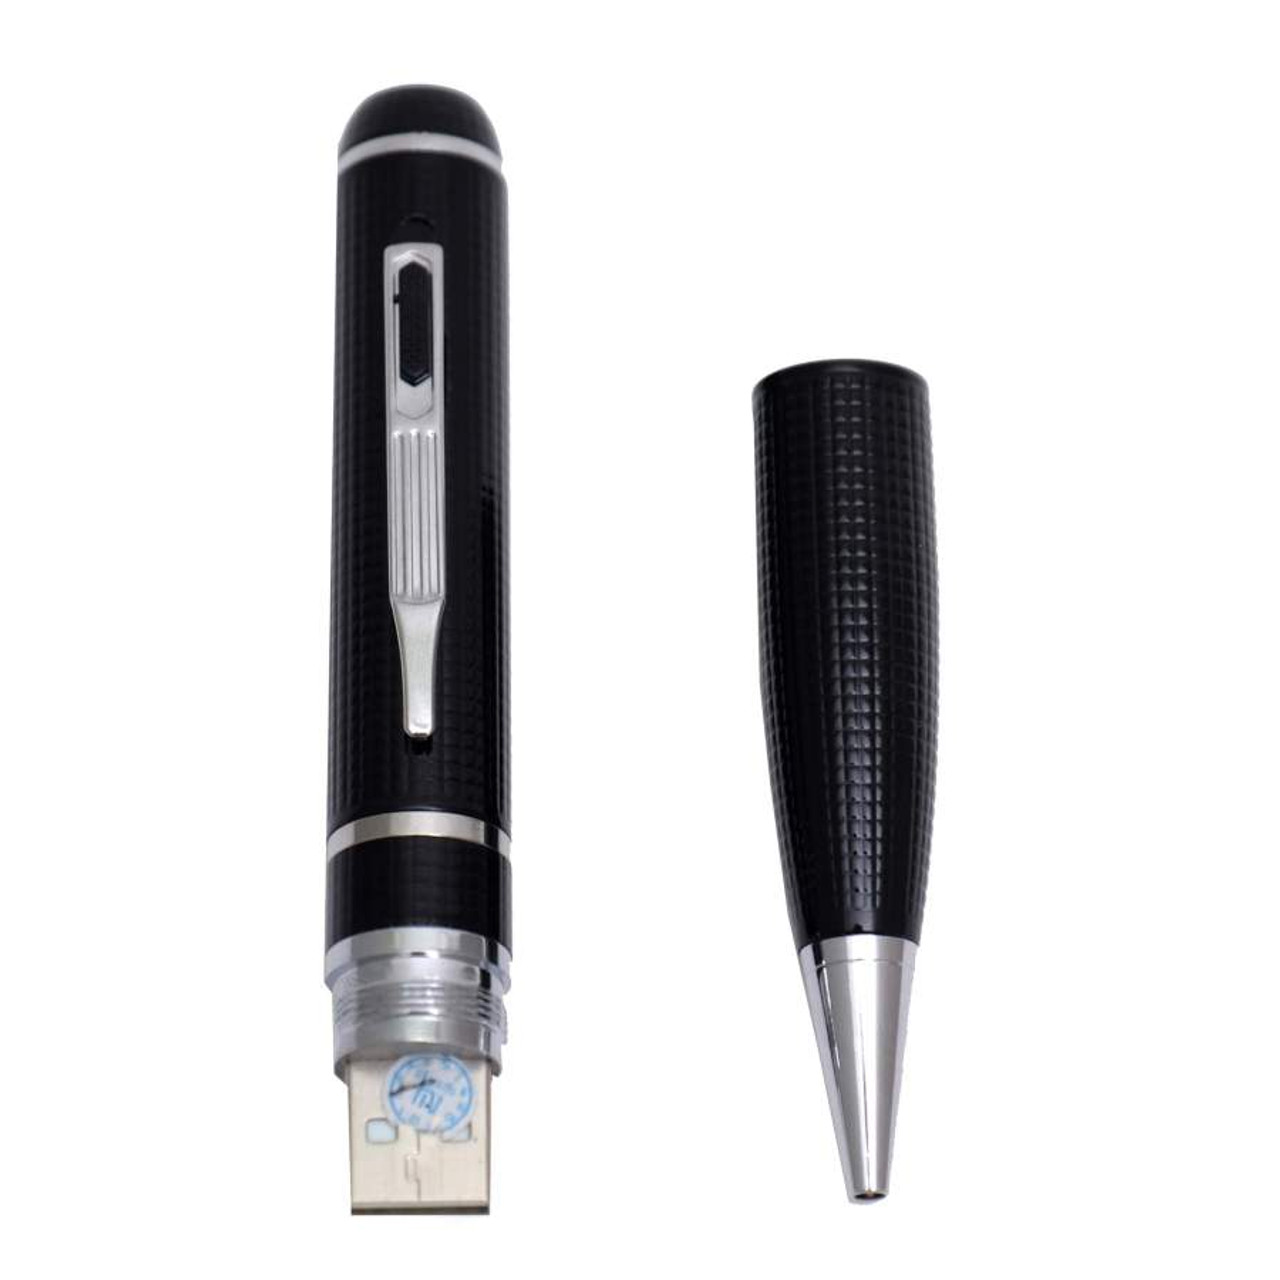 2K Hidden Pen Camera with Motion Activated Recording